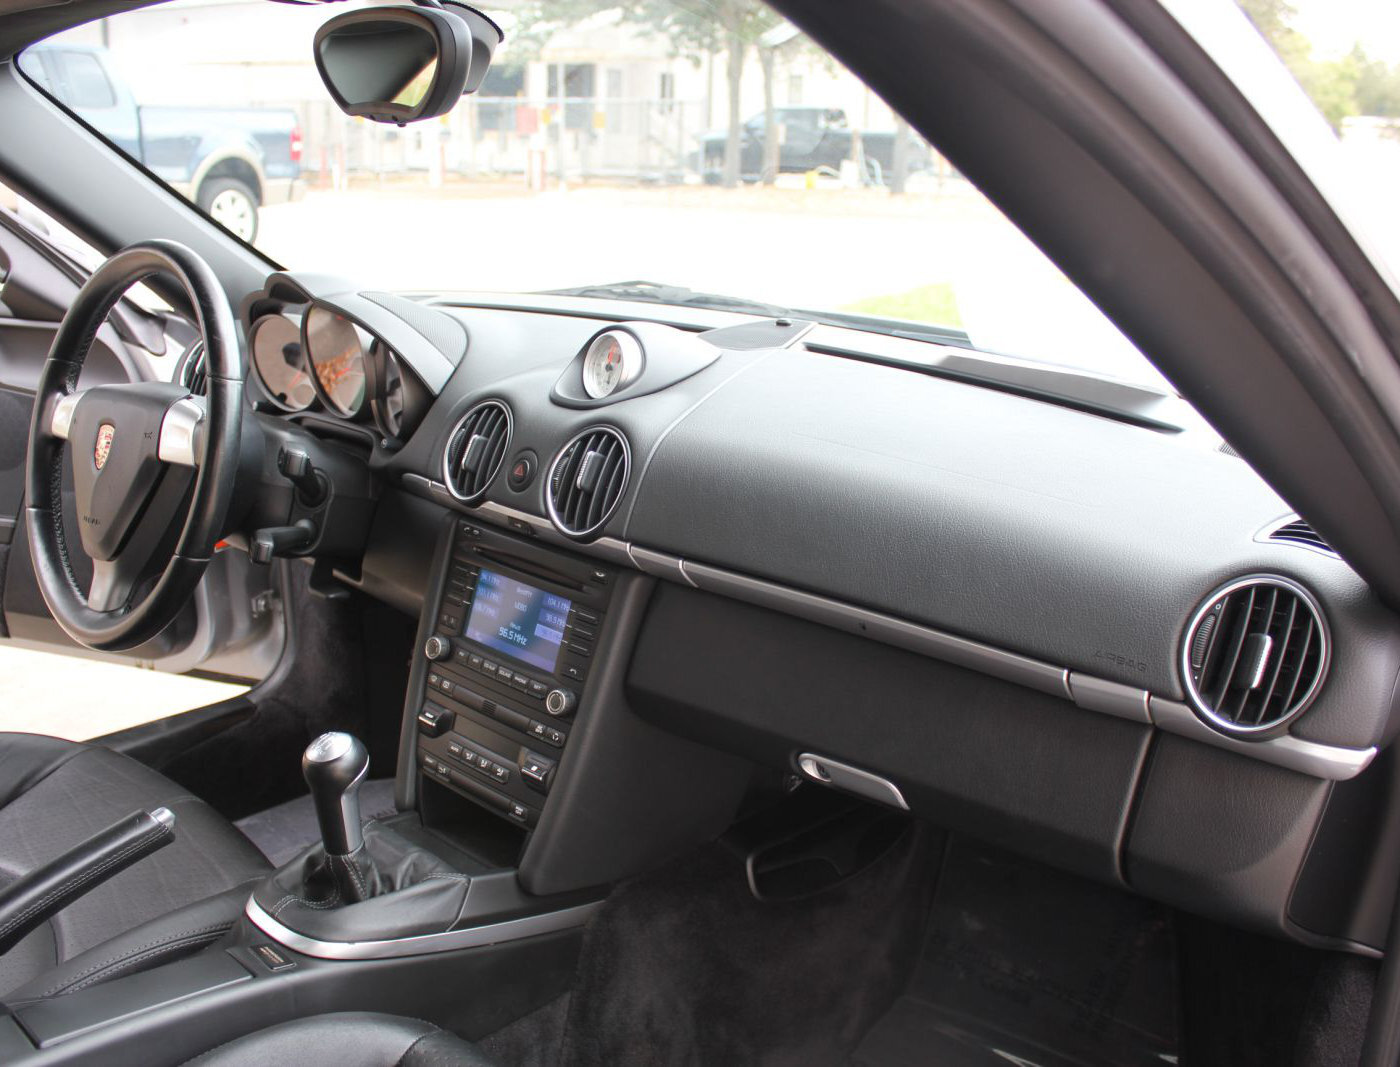 (Sample) The interior of a 2009 Porsche Cayman